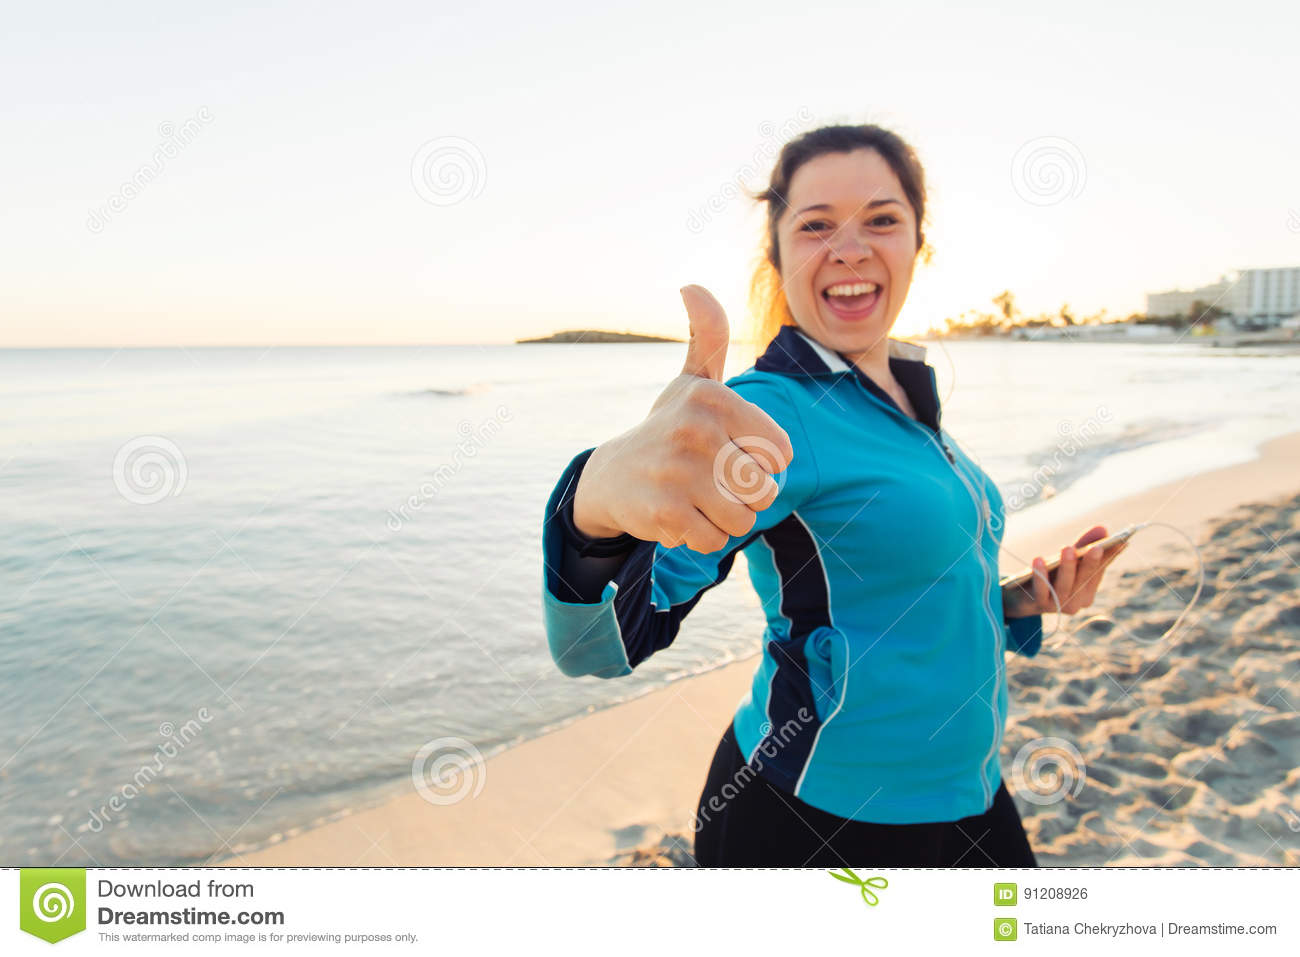 Concept of sport, fitness, healthy lifestyle and running - Motivated sporty woman doing thumbs up success gesture after